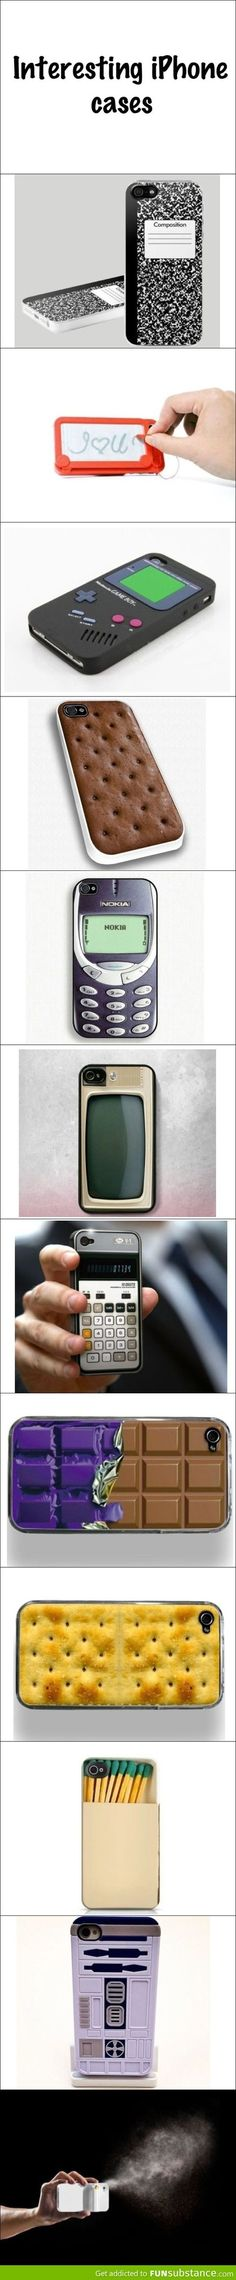 Interesting iPhone cases - some of these are very clever!